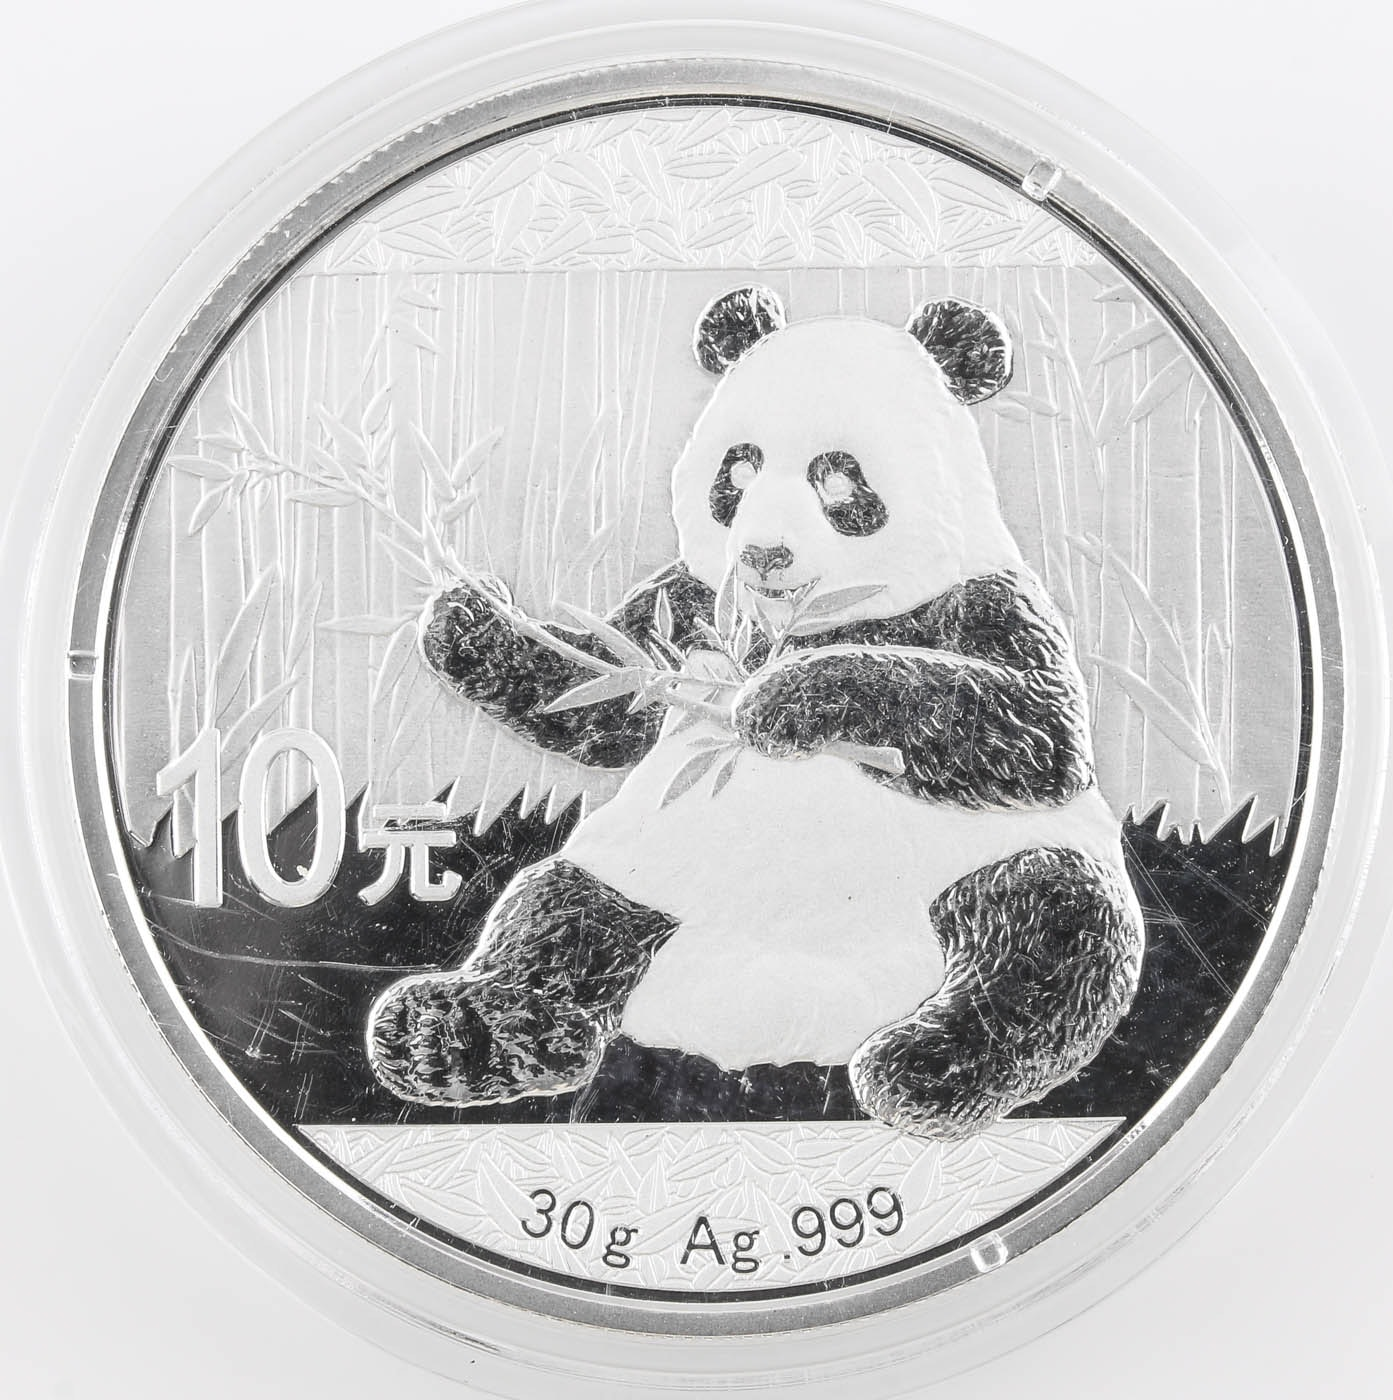 2017 Ten Yuan Chinese Silver Panda Coin